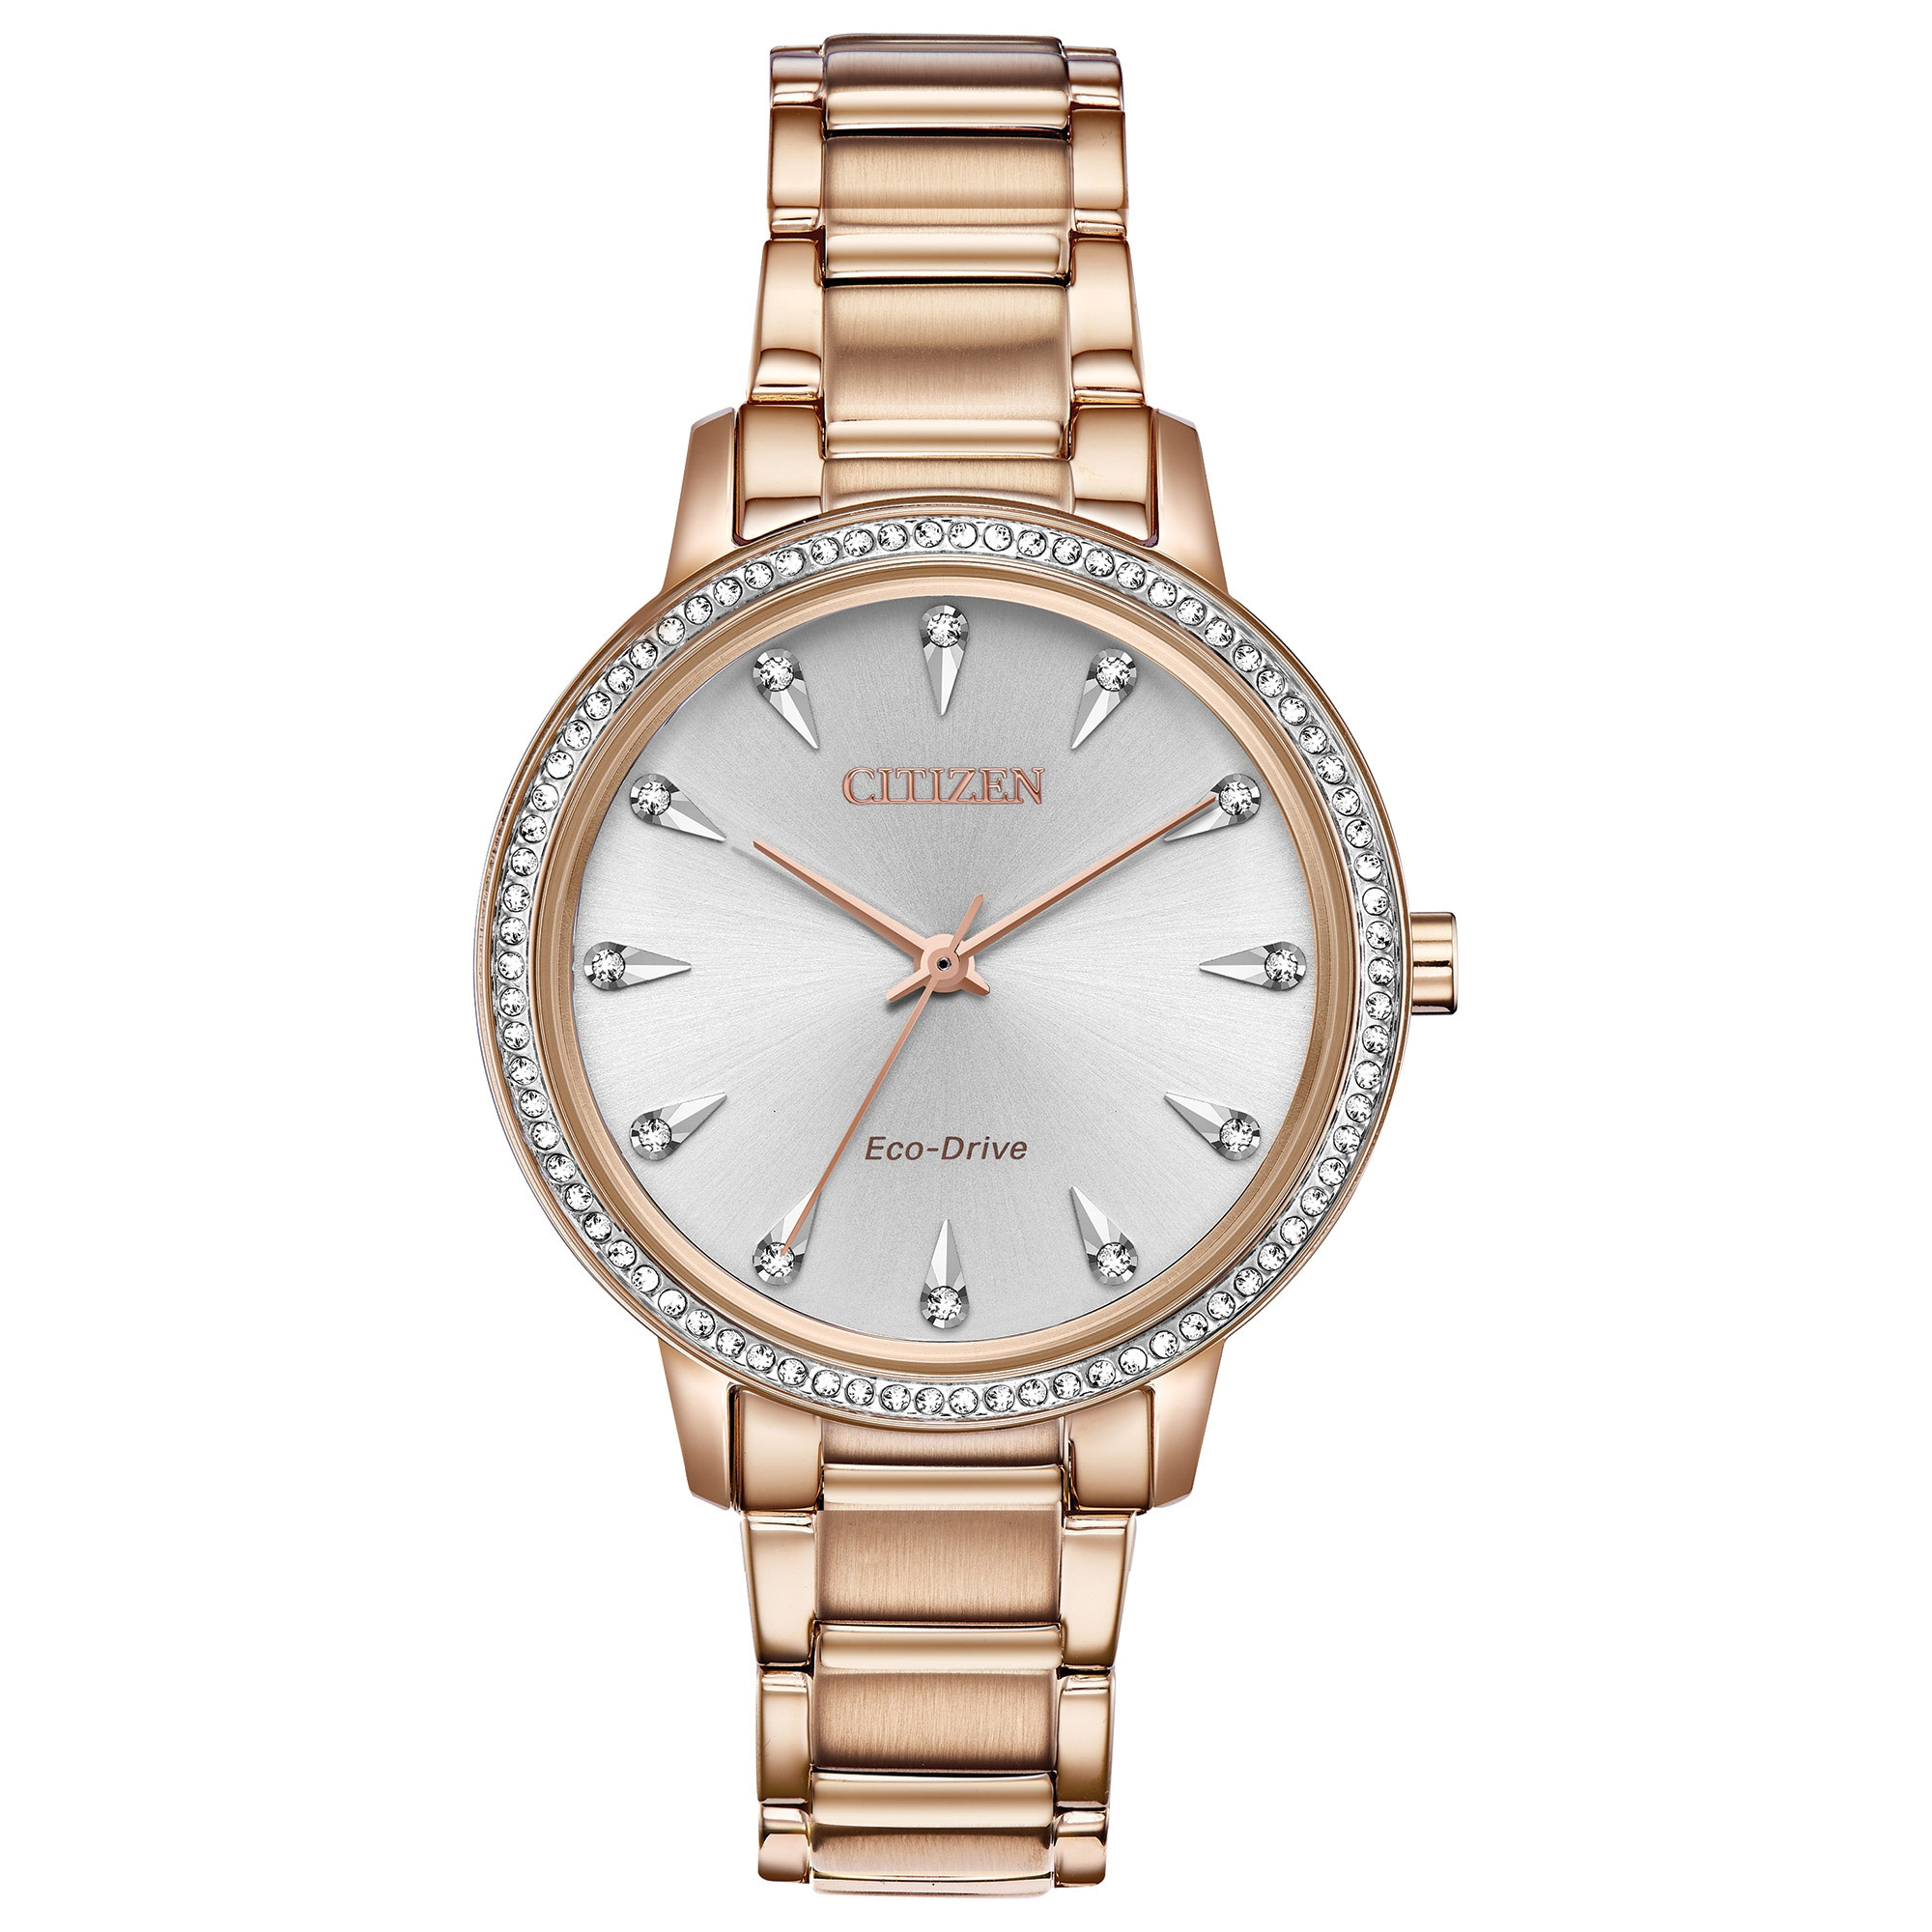 FE7043-55A Citizen Silhouette Crystal Eco-Drive Ladies Watch